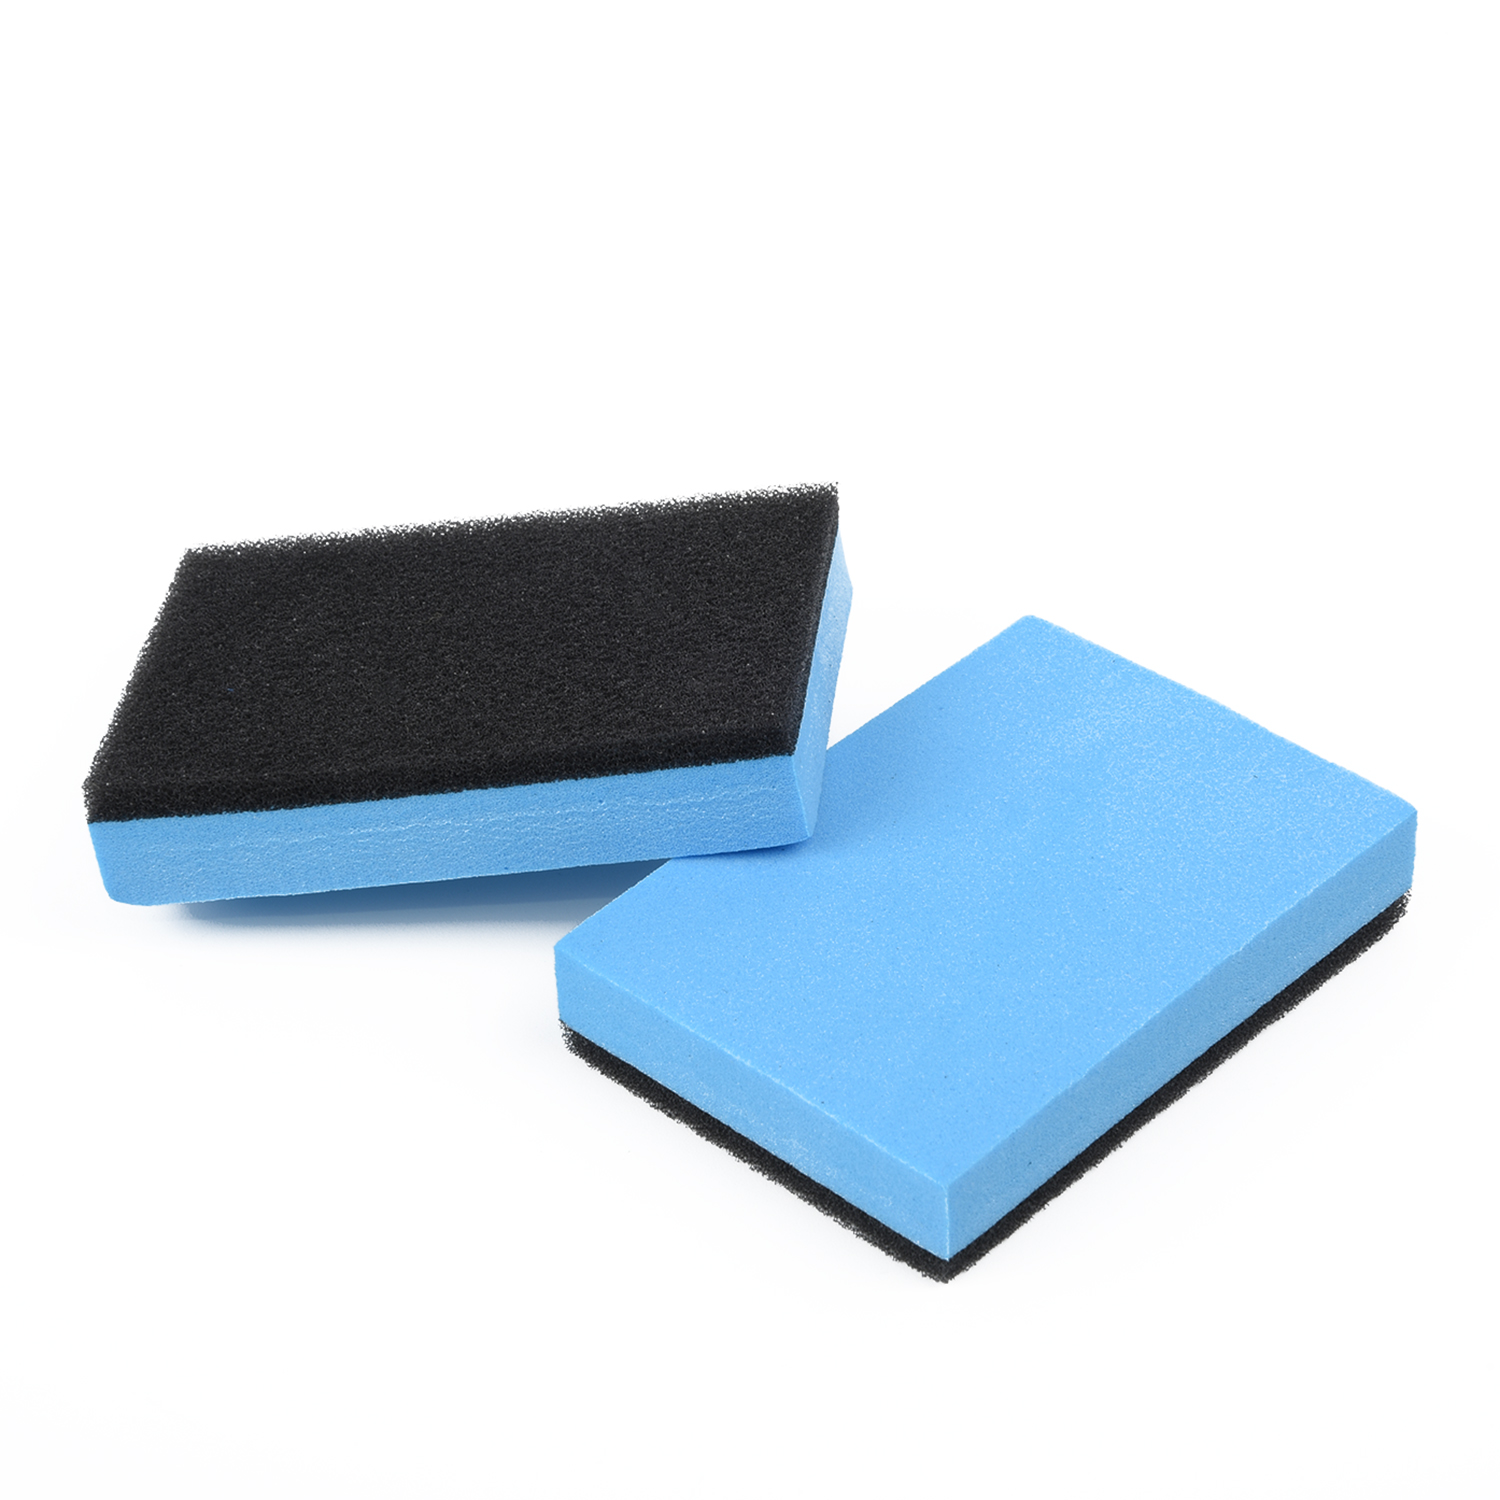 Car Cleaning Ceramic Coating EVA Sponge Glass Wax Coat Applicator Pad Fine Car Cleaning Supply Accessories